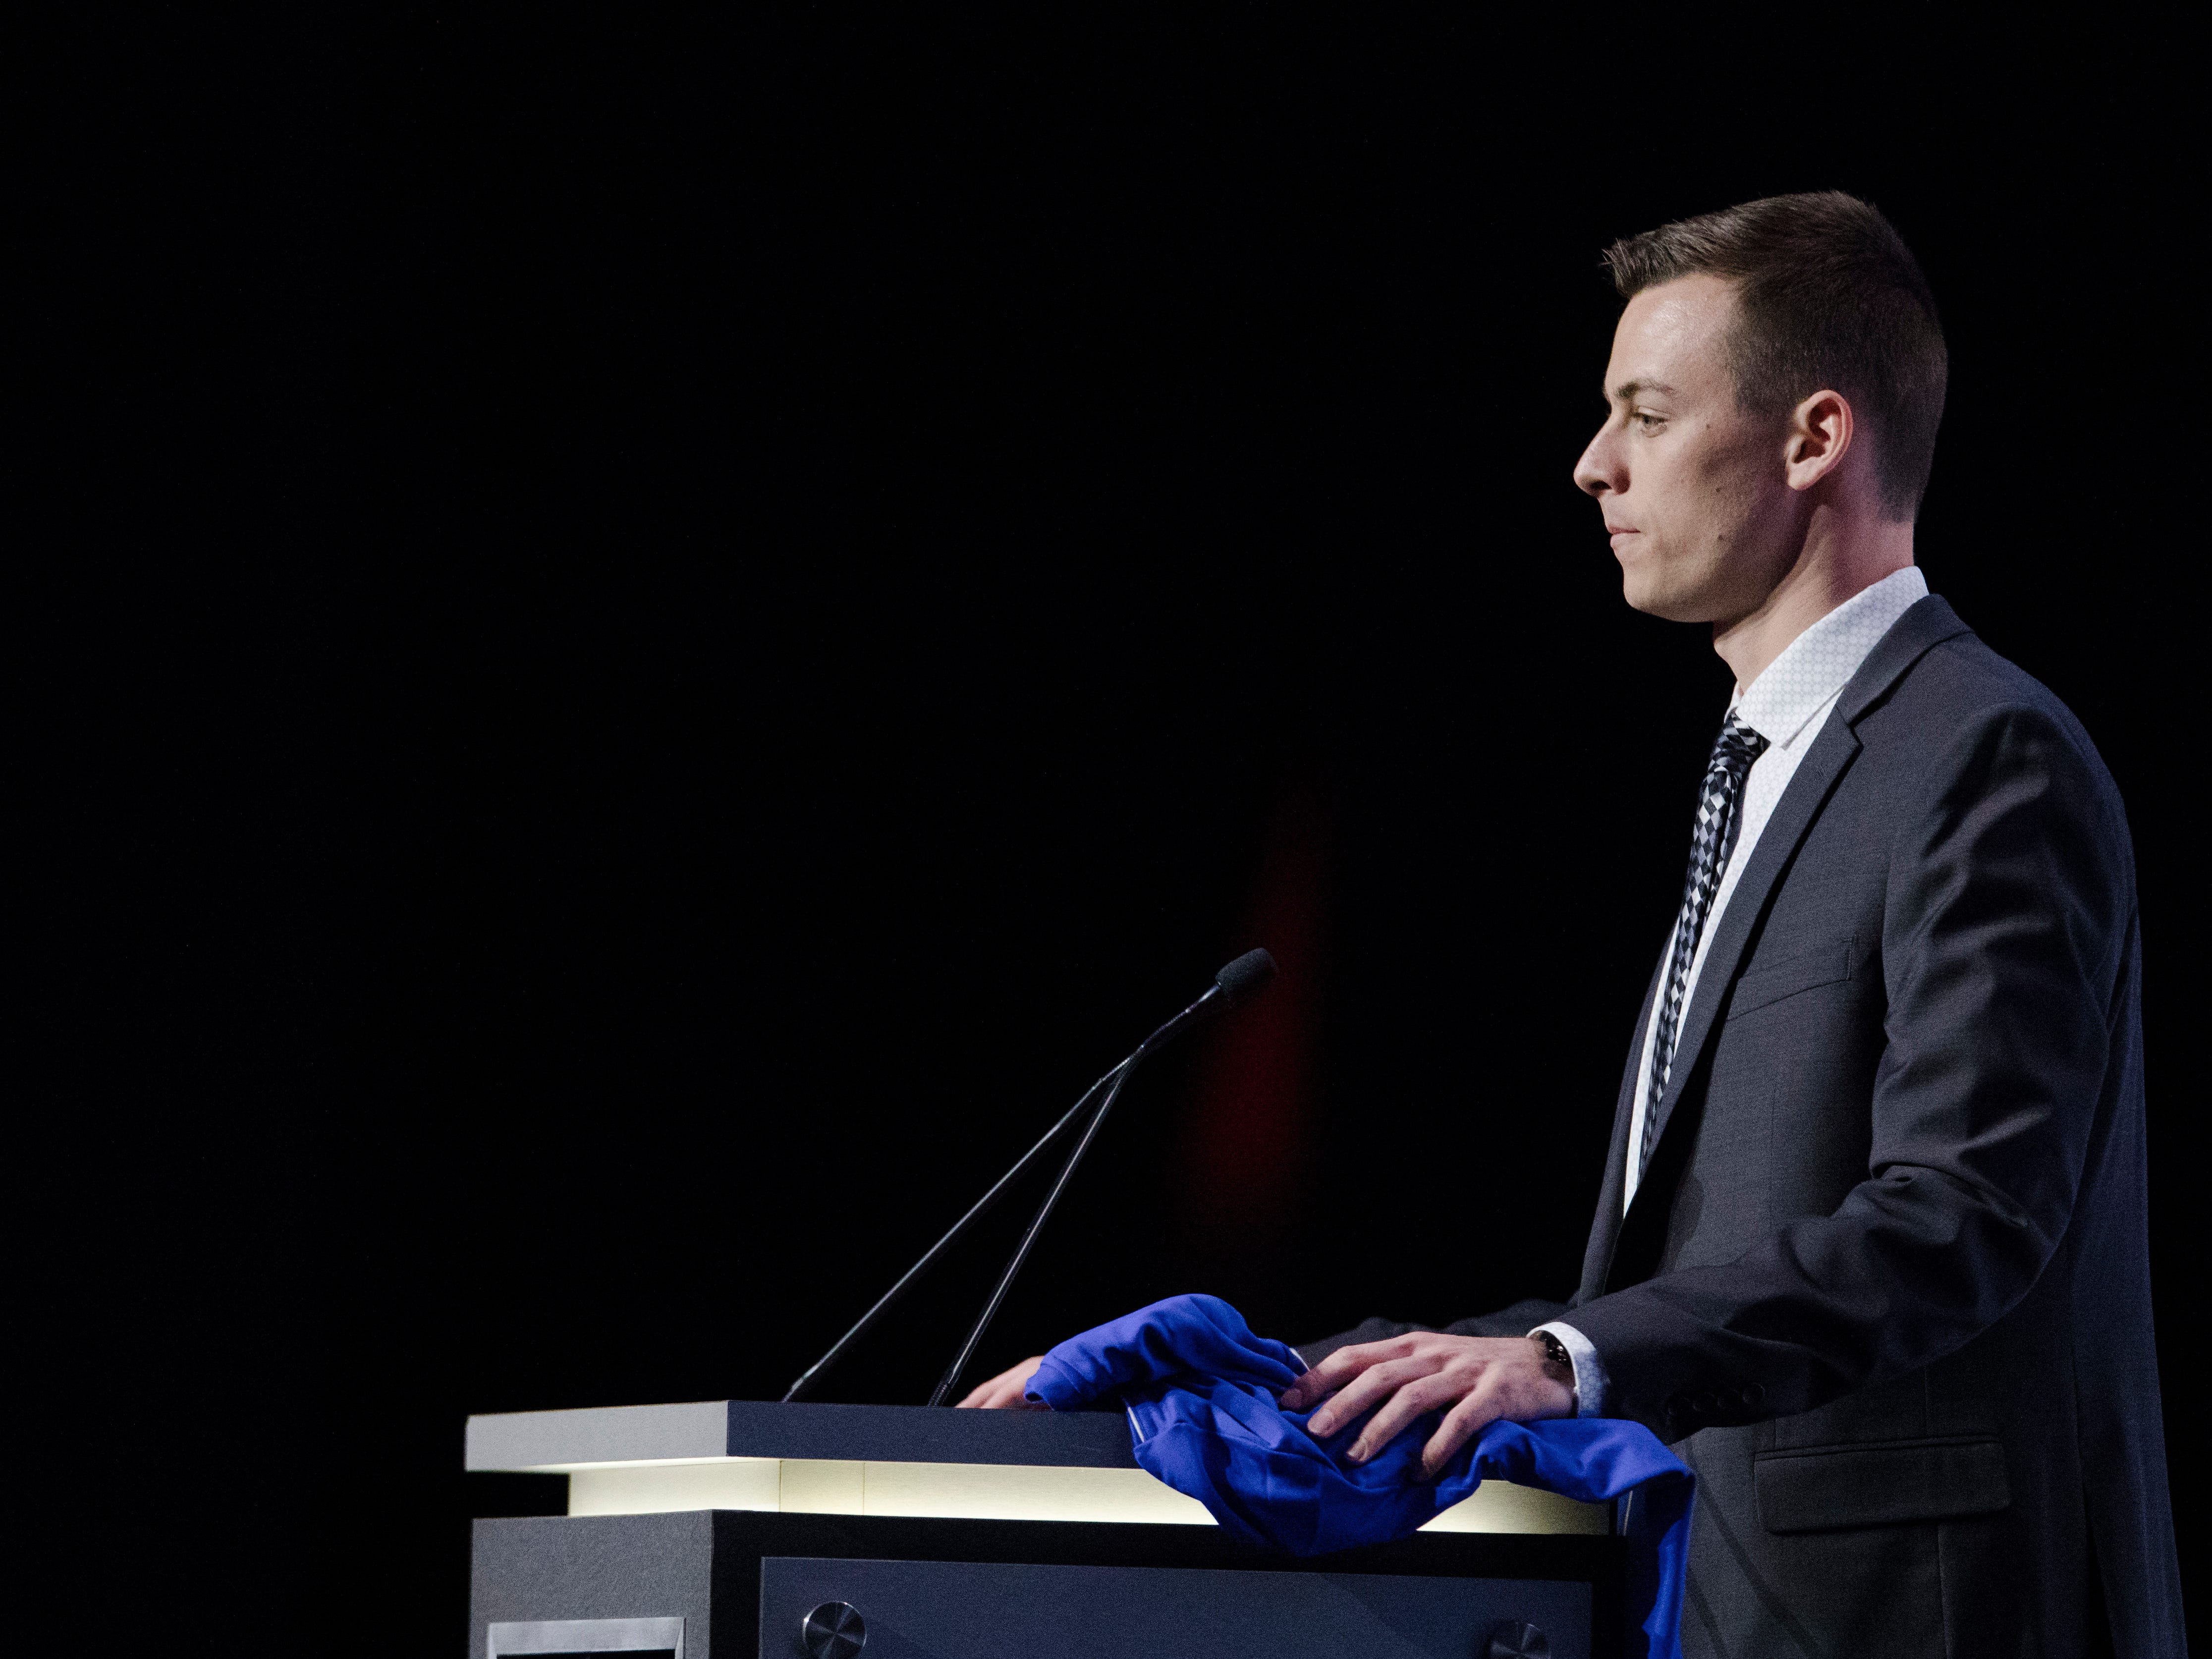 Jimmy Hague speaks after being drafted by FC Cincinnati as the second round of the MLS Superdraft on Friday, Jan. 11, 2019 in Chicago, Illinois.